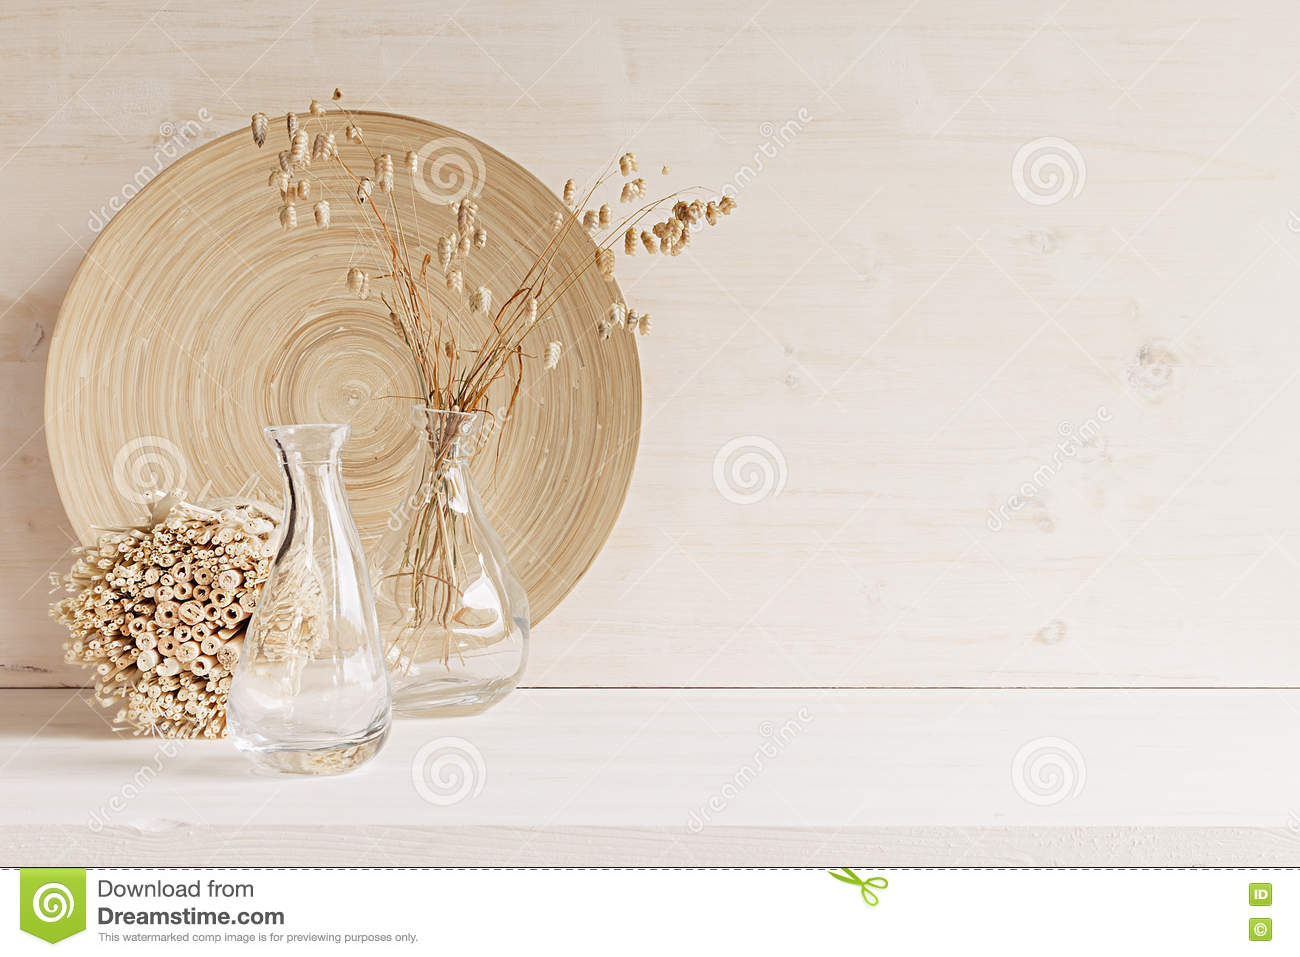 Soft home decor of glass vase with spikelets and wooden plate on white wood background.